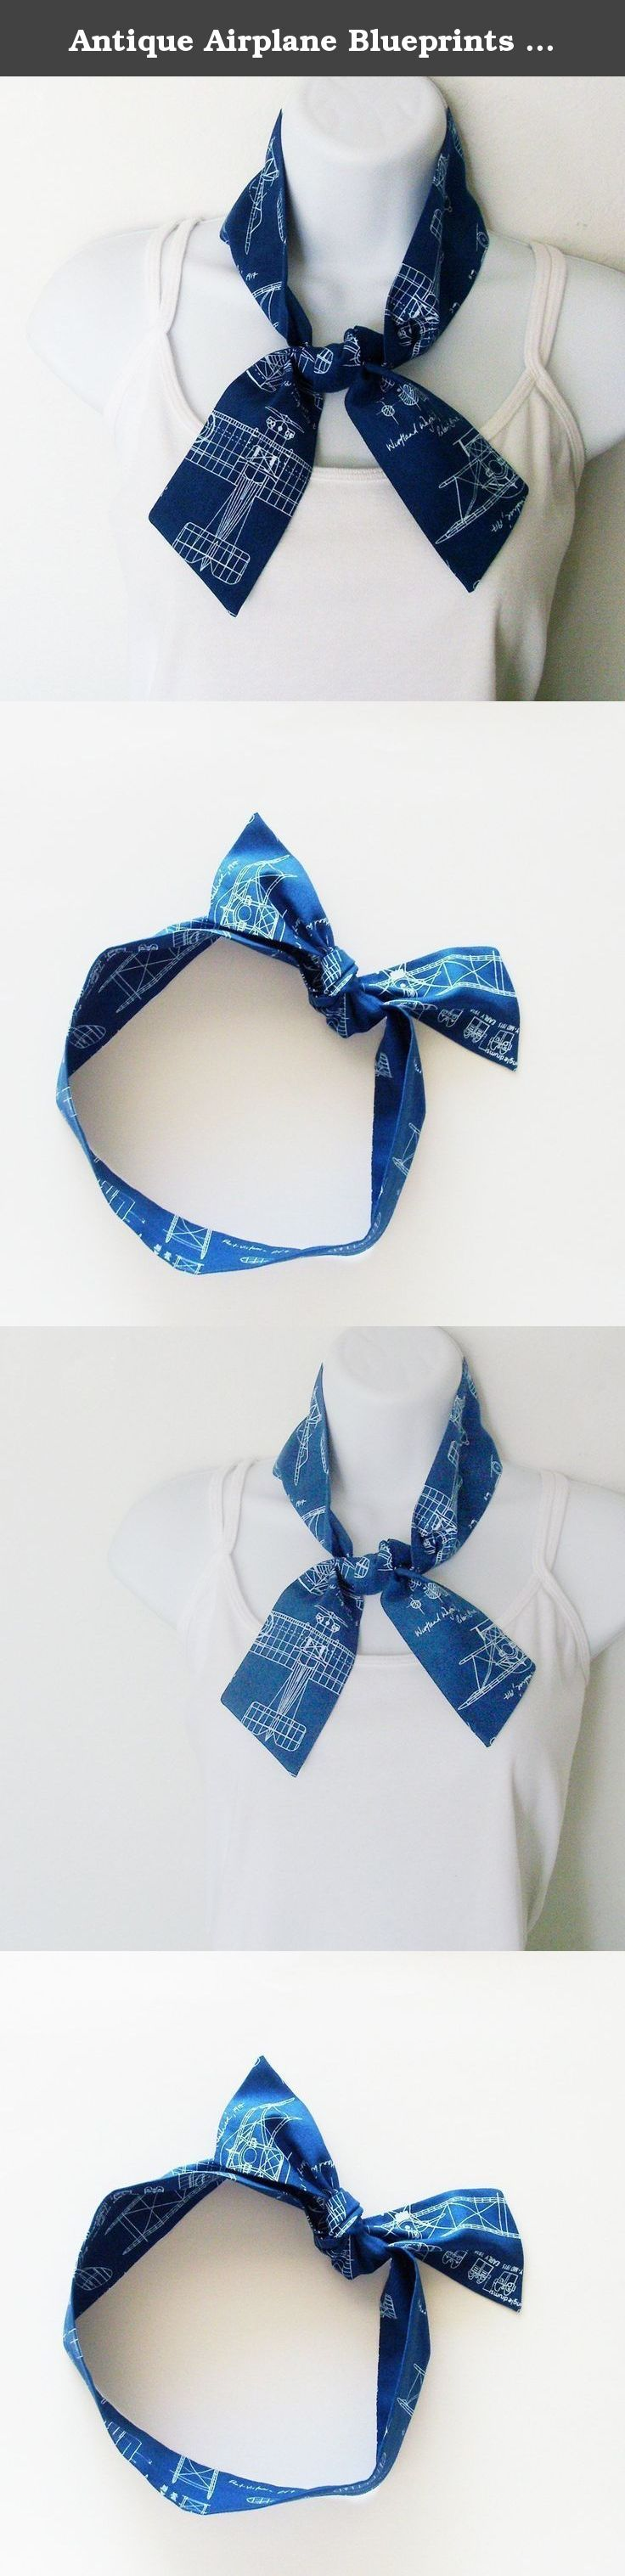 Antique Airplane Blueprints Head Scarf / ME2Designs Handmade Multipurpose Cotton Scarf - Tie - Adornment. This reversible antique airplane blueprints head scarf has versatile uses! Tie it on your head with the bow at the top of your head (rockabilly style), on the side, or tie it at your neck. You can also pop the scarf around your neck for a skinny neck scarf addition to your outfit. Another use is to tie the scarf around the handle of your handbag or tote, or on a walker for adornment…